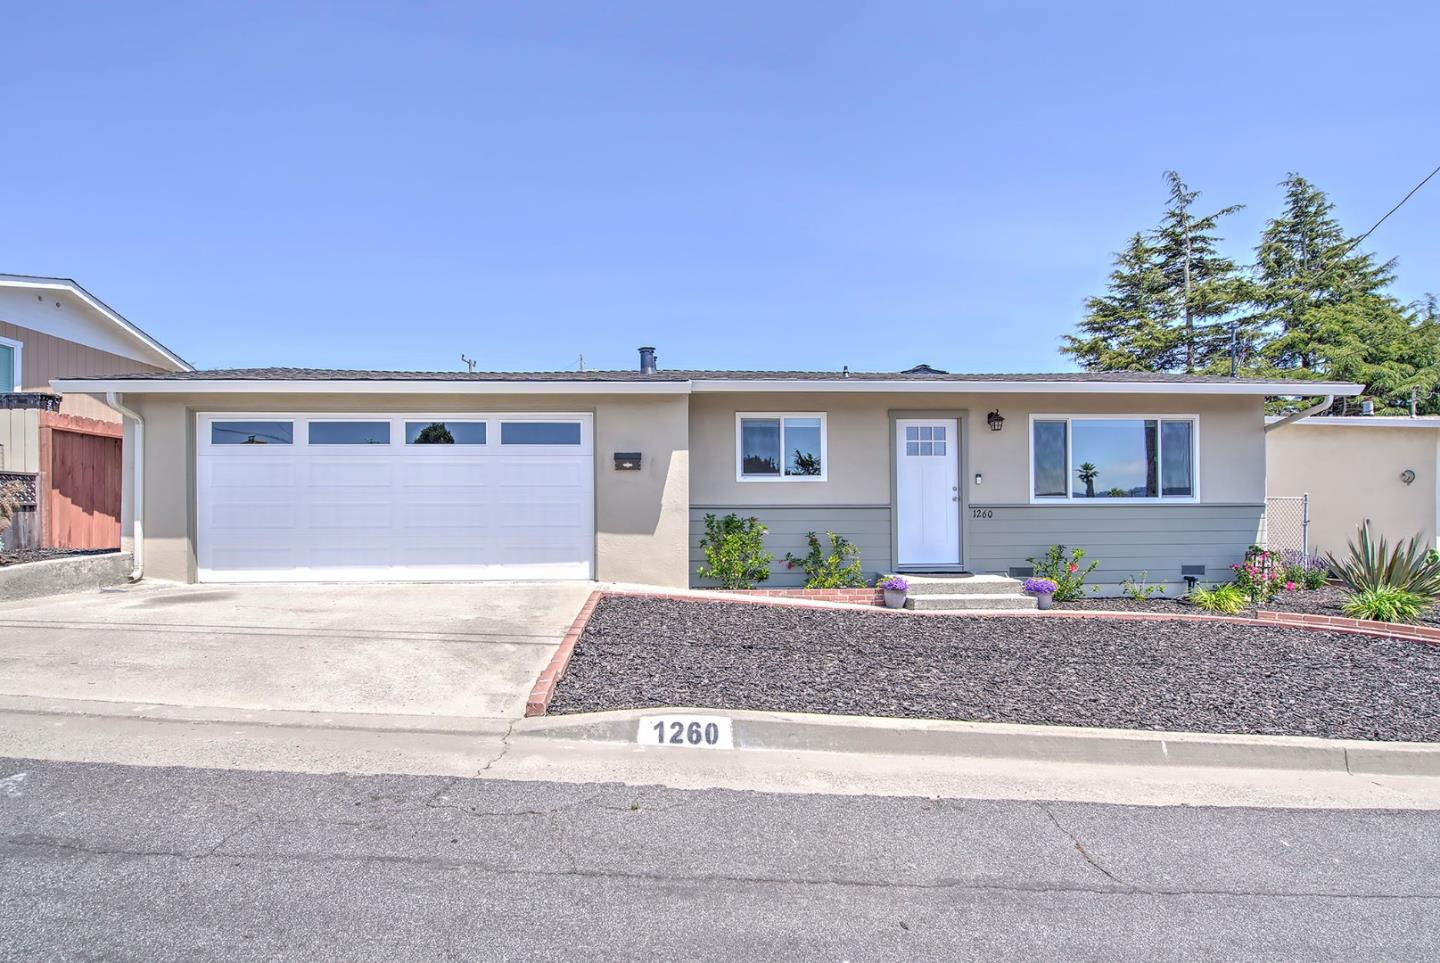 Photo of 1260 Harding ST, SEASIDE, CA 93955